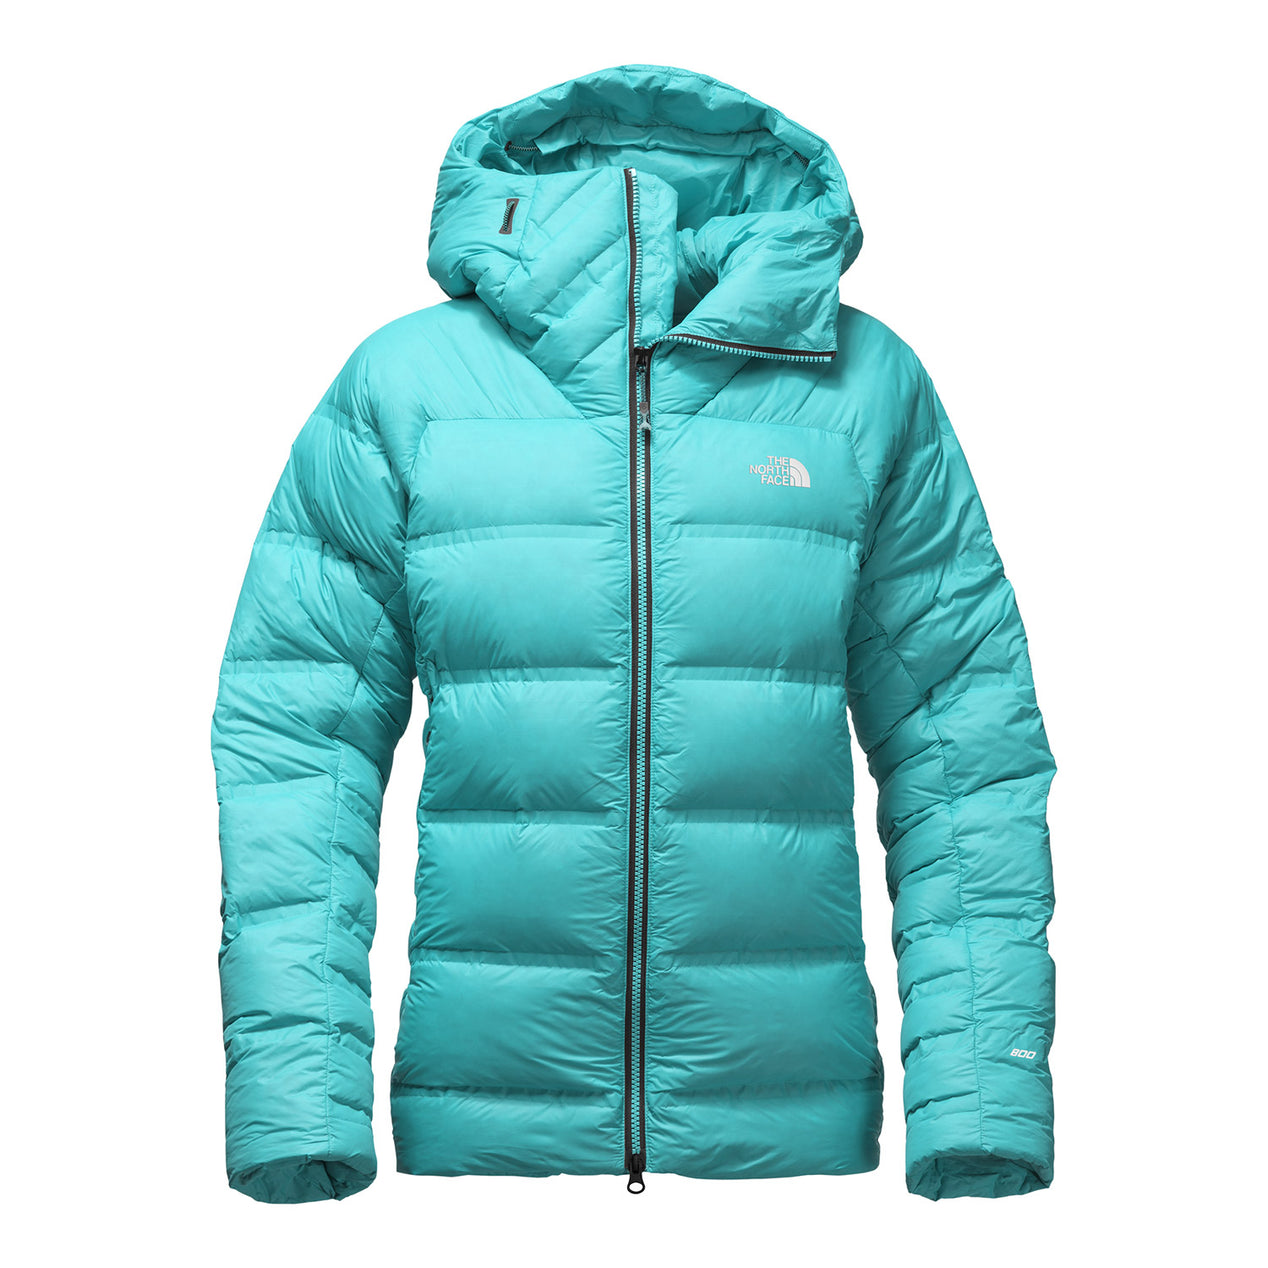 2bc3fbd2c621 The North Face Women s Summit L6 Down Belay Parka Past Season ...